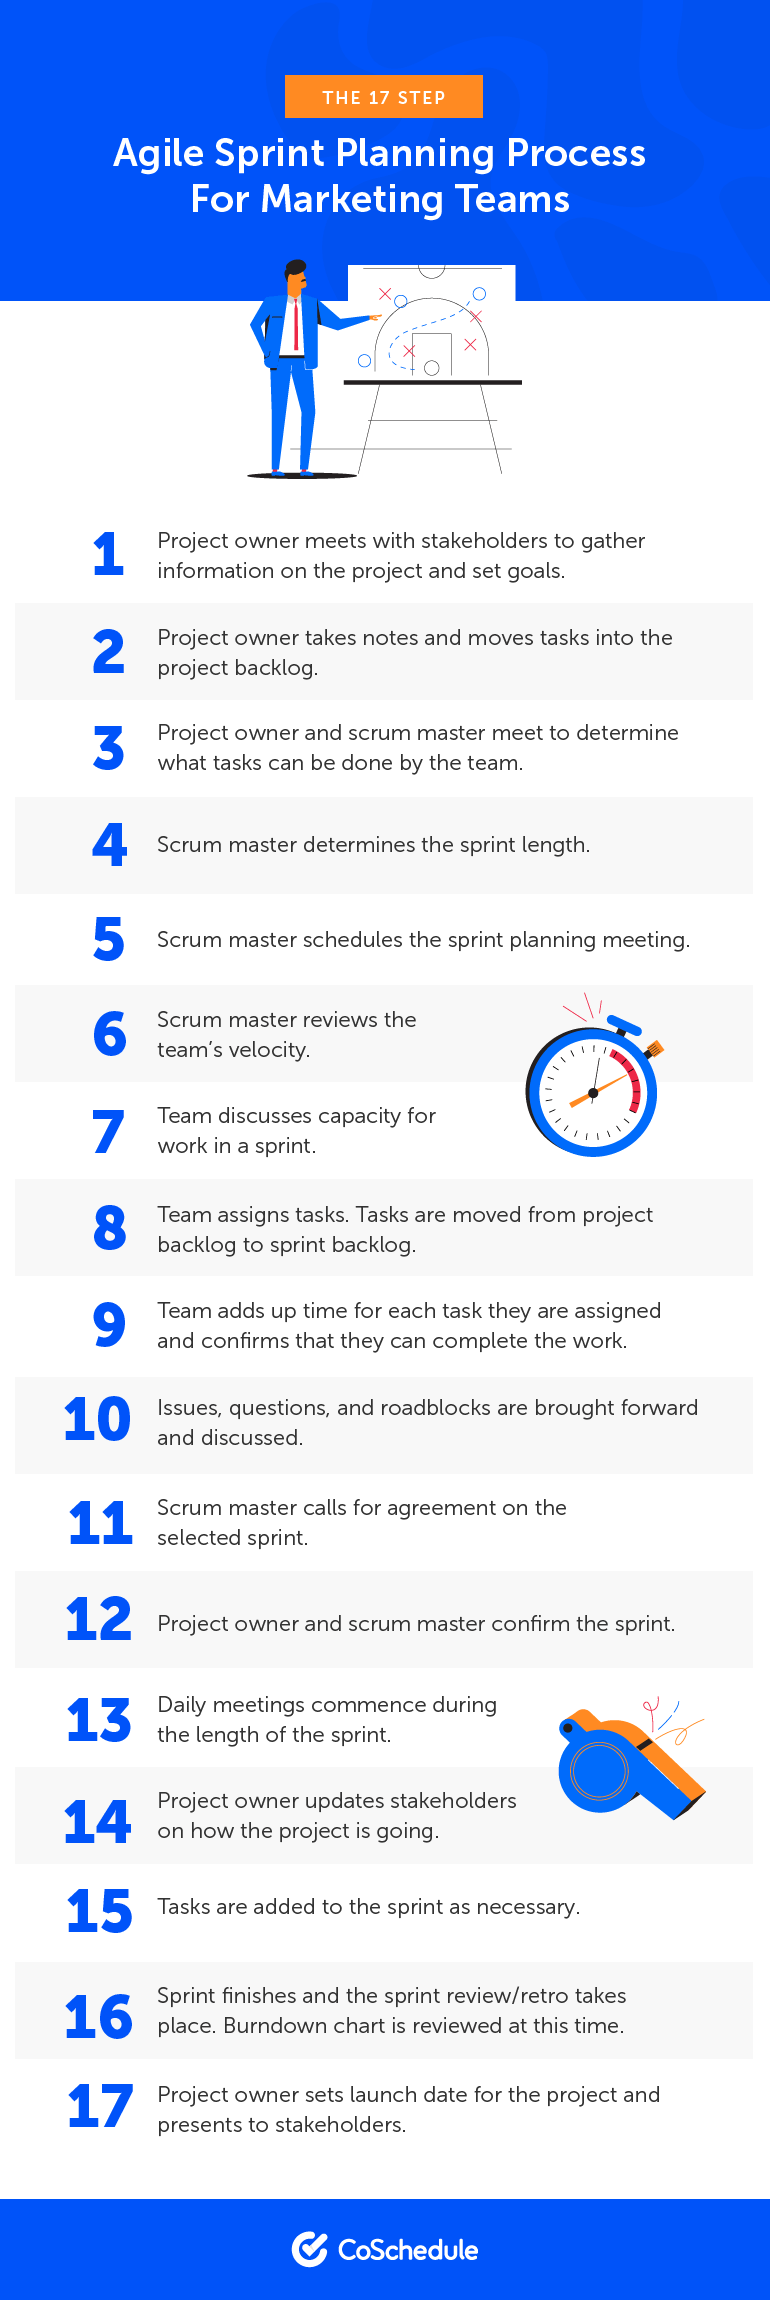 17 Steps of the Agile Sprint Planning